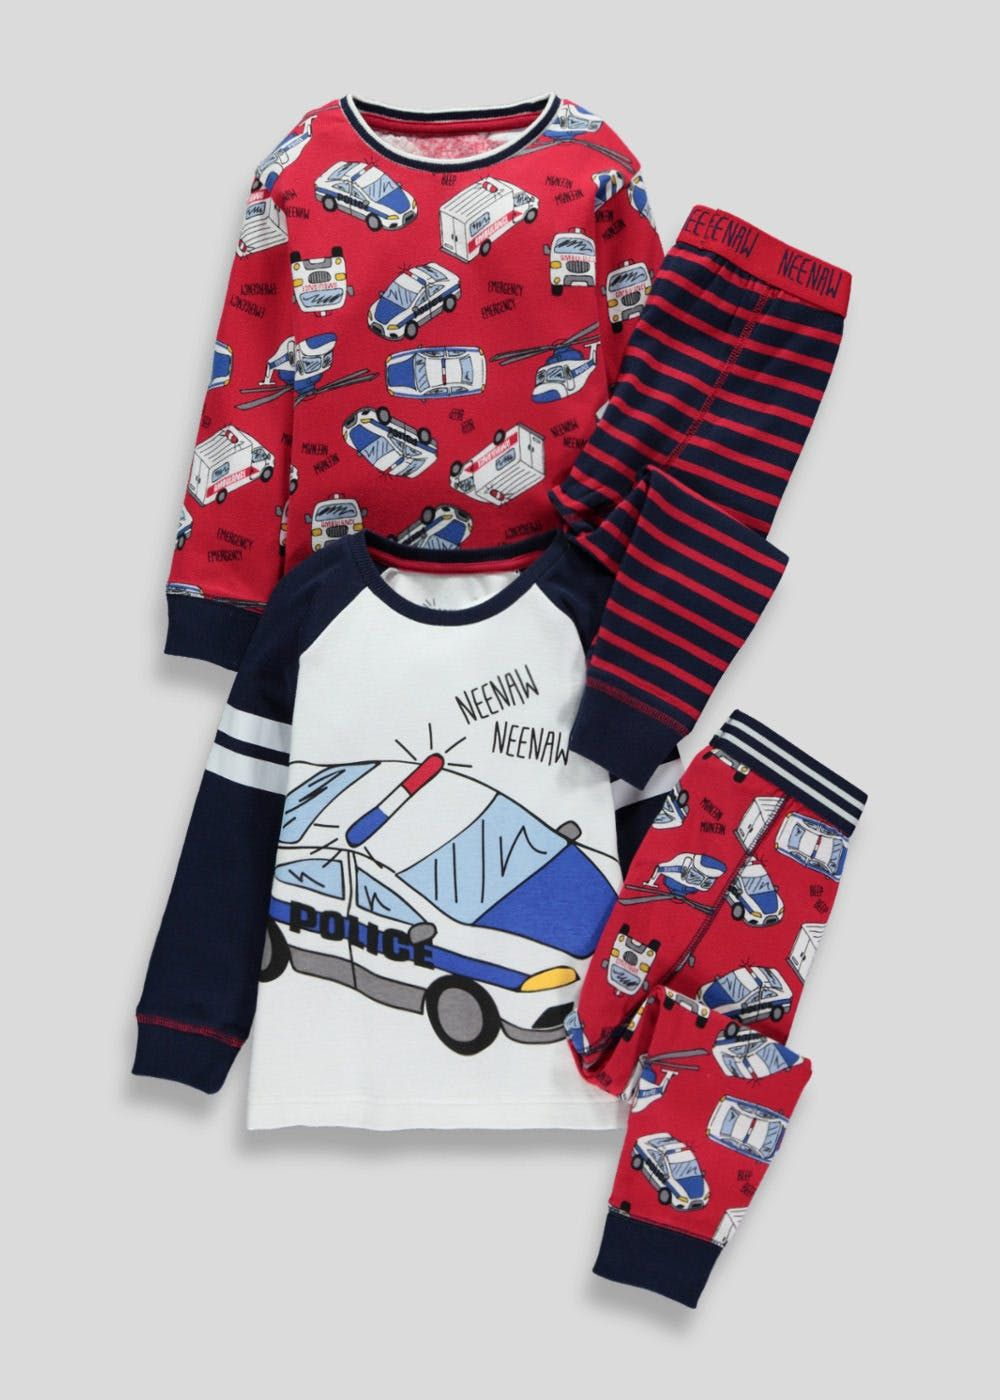 Boys 2 pck Transport pyjamas (9mths5yrs) Pyjamas, Long